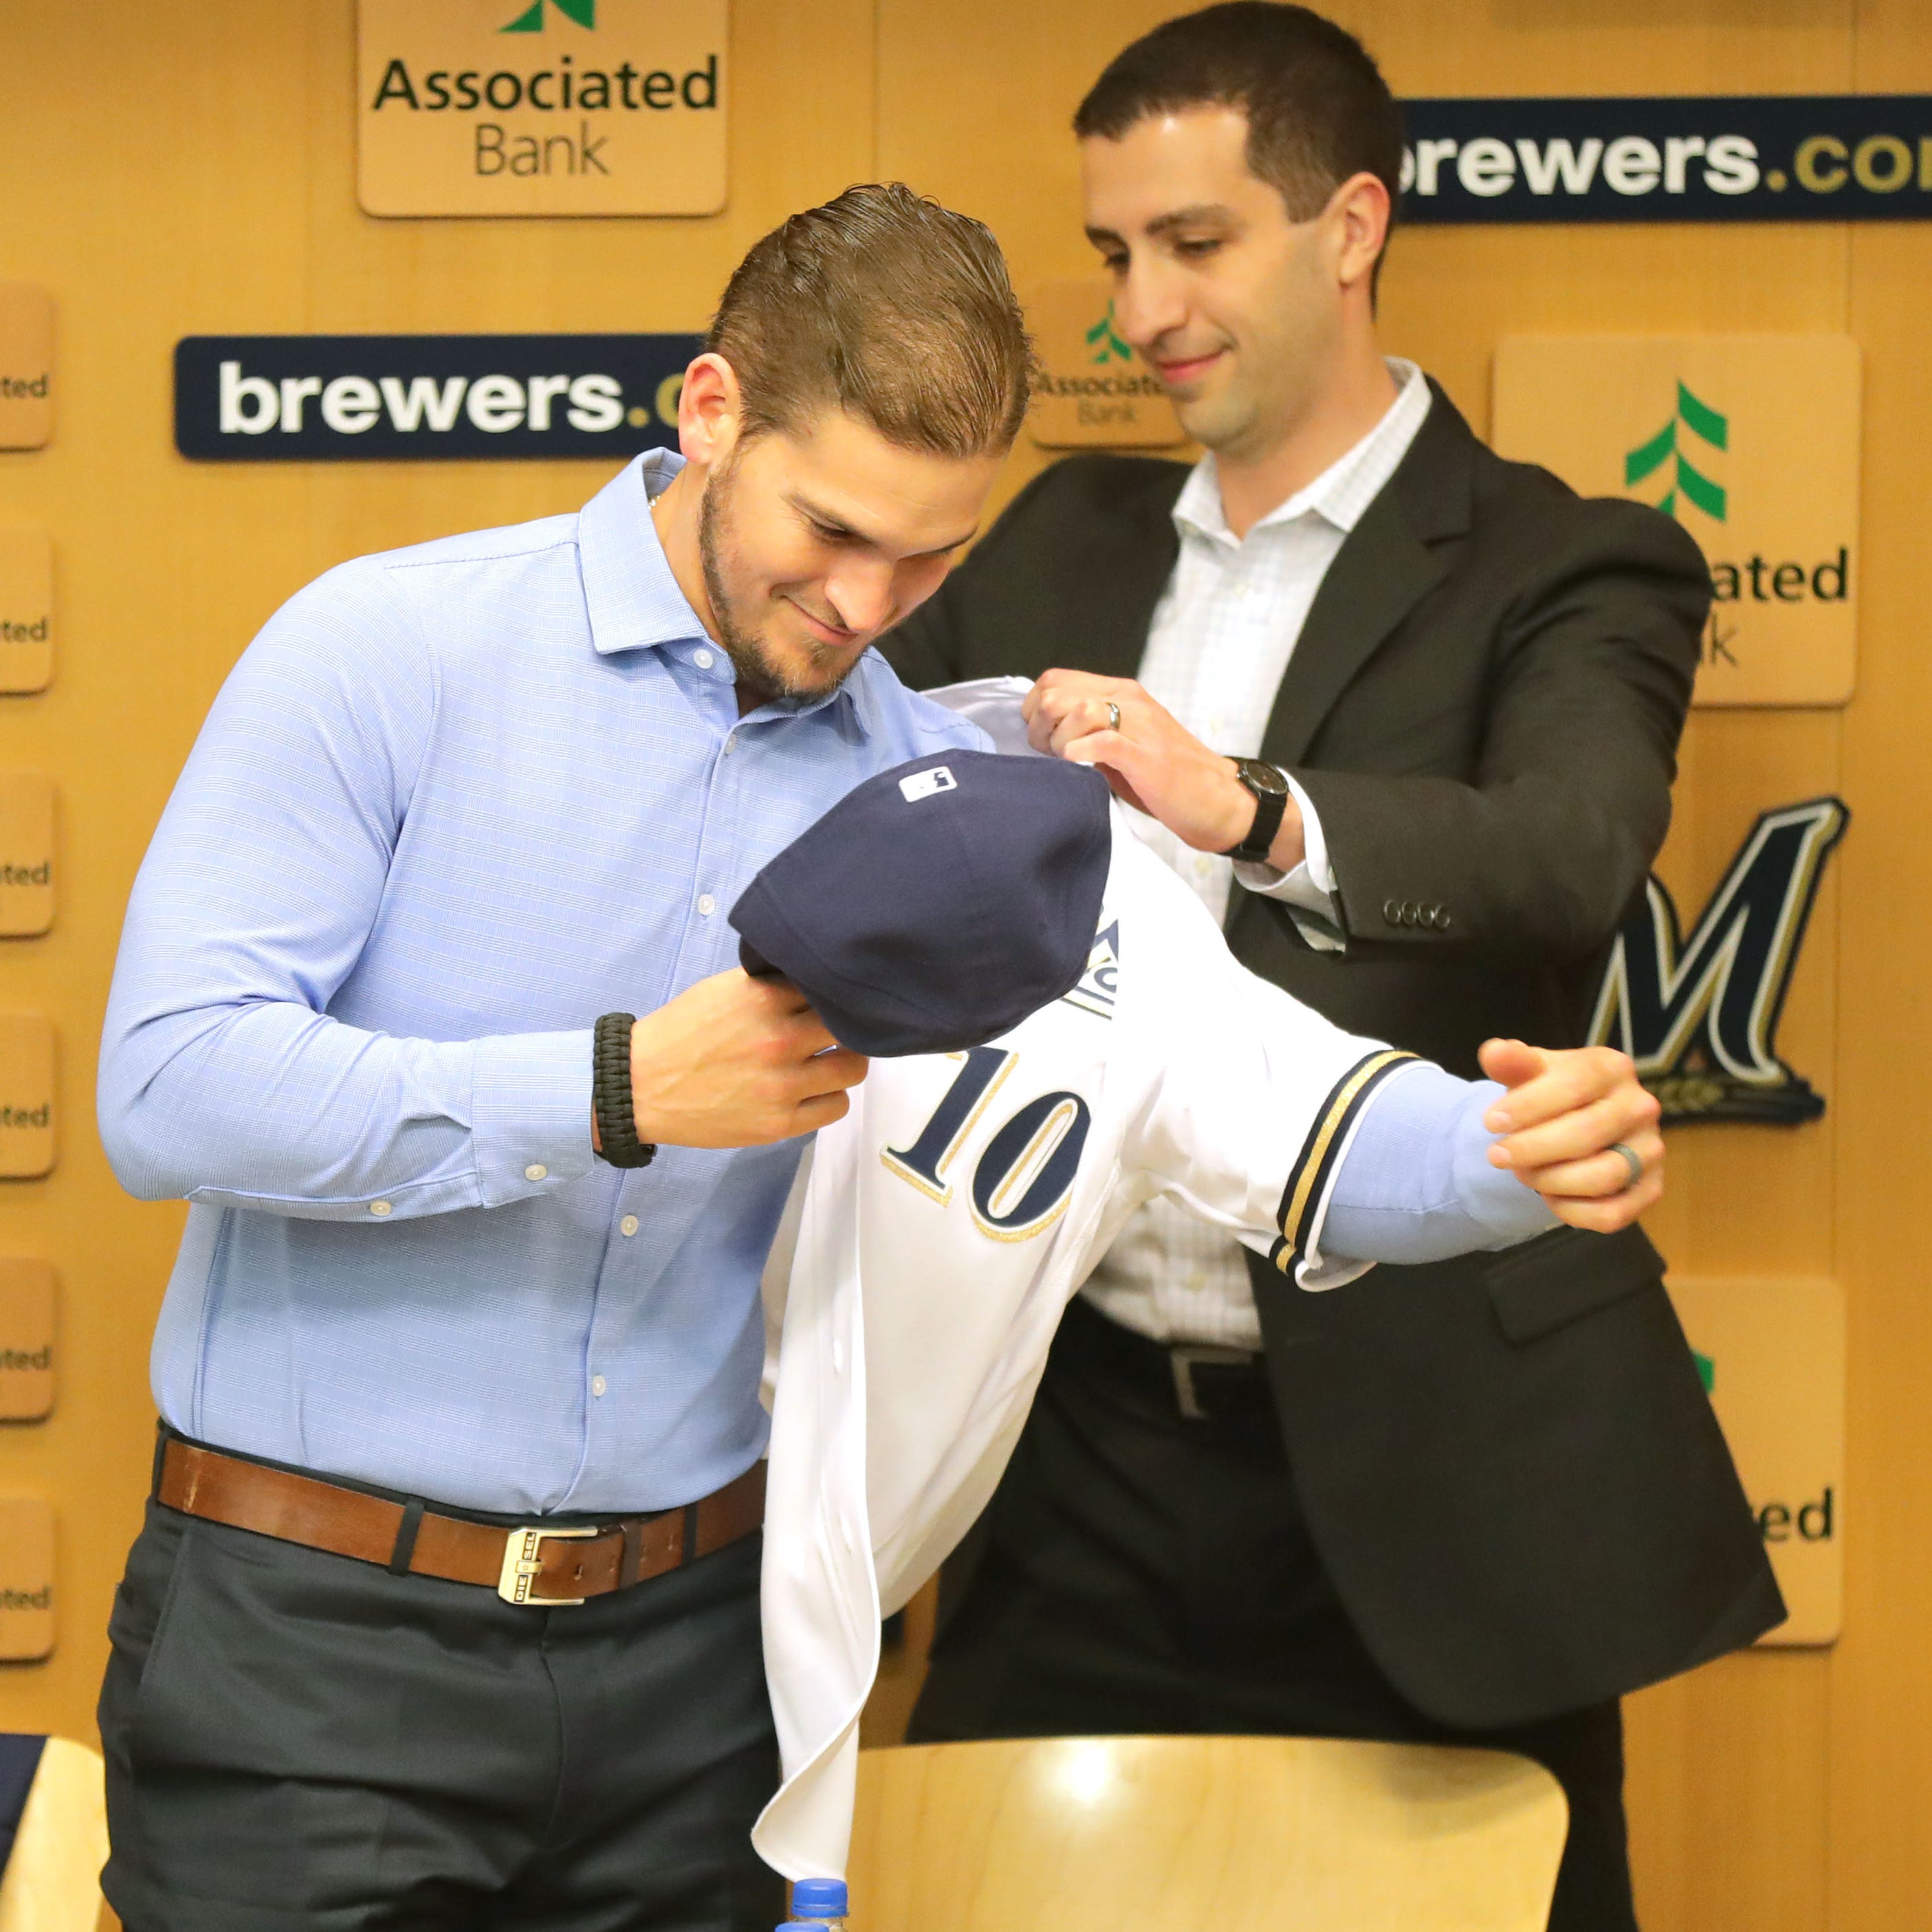 Yasmani Grandal's quest for higher average salary led to surprising agreement with Brewers